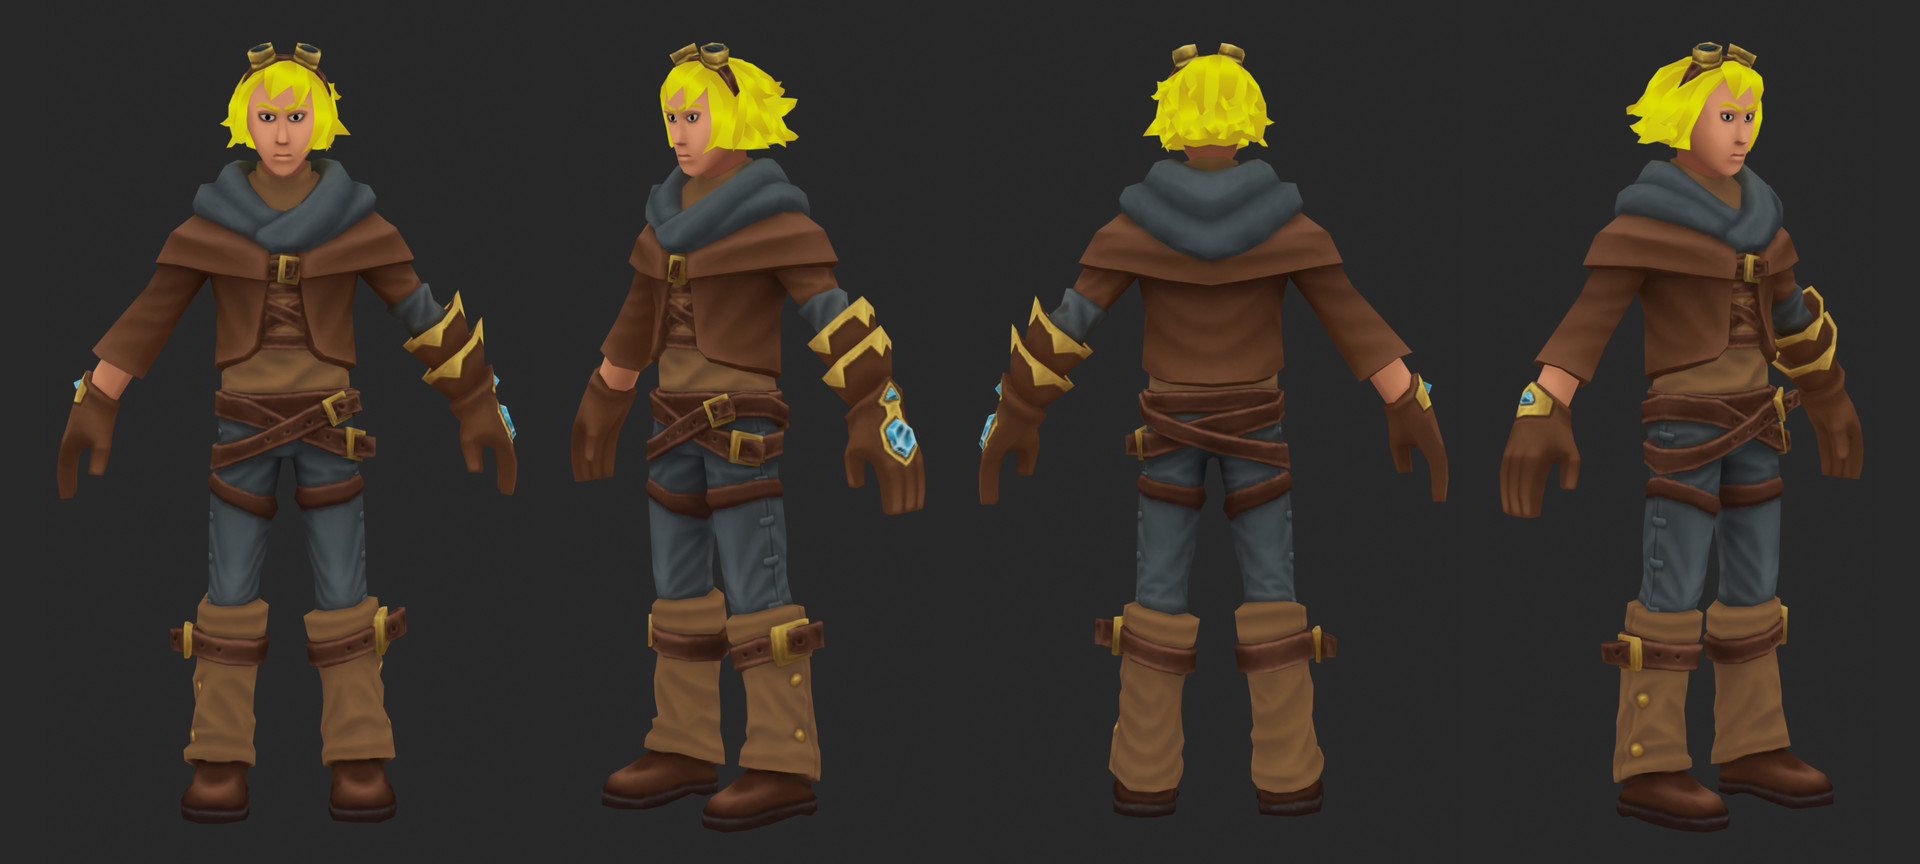 Artstation League Of Legends Ezreal Companion For Torchlight Ii